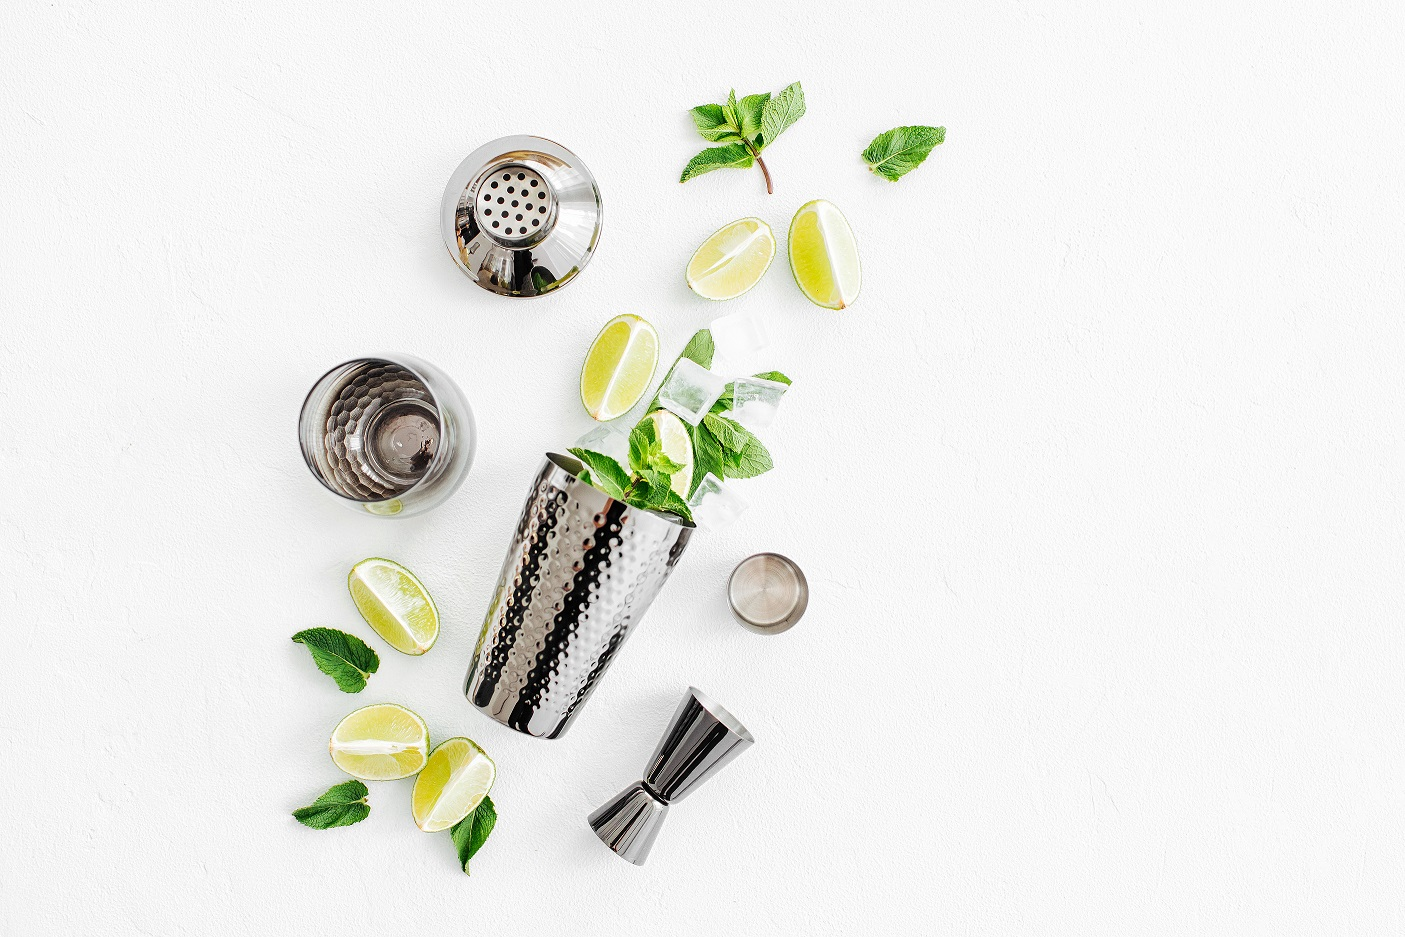 cocktail shaker with mint leaves and limes